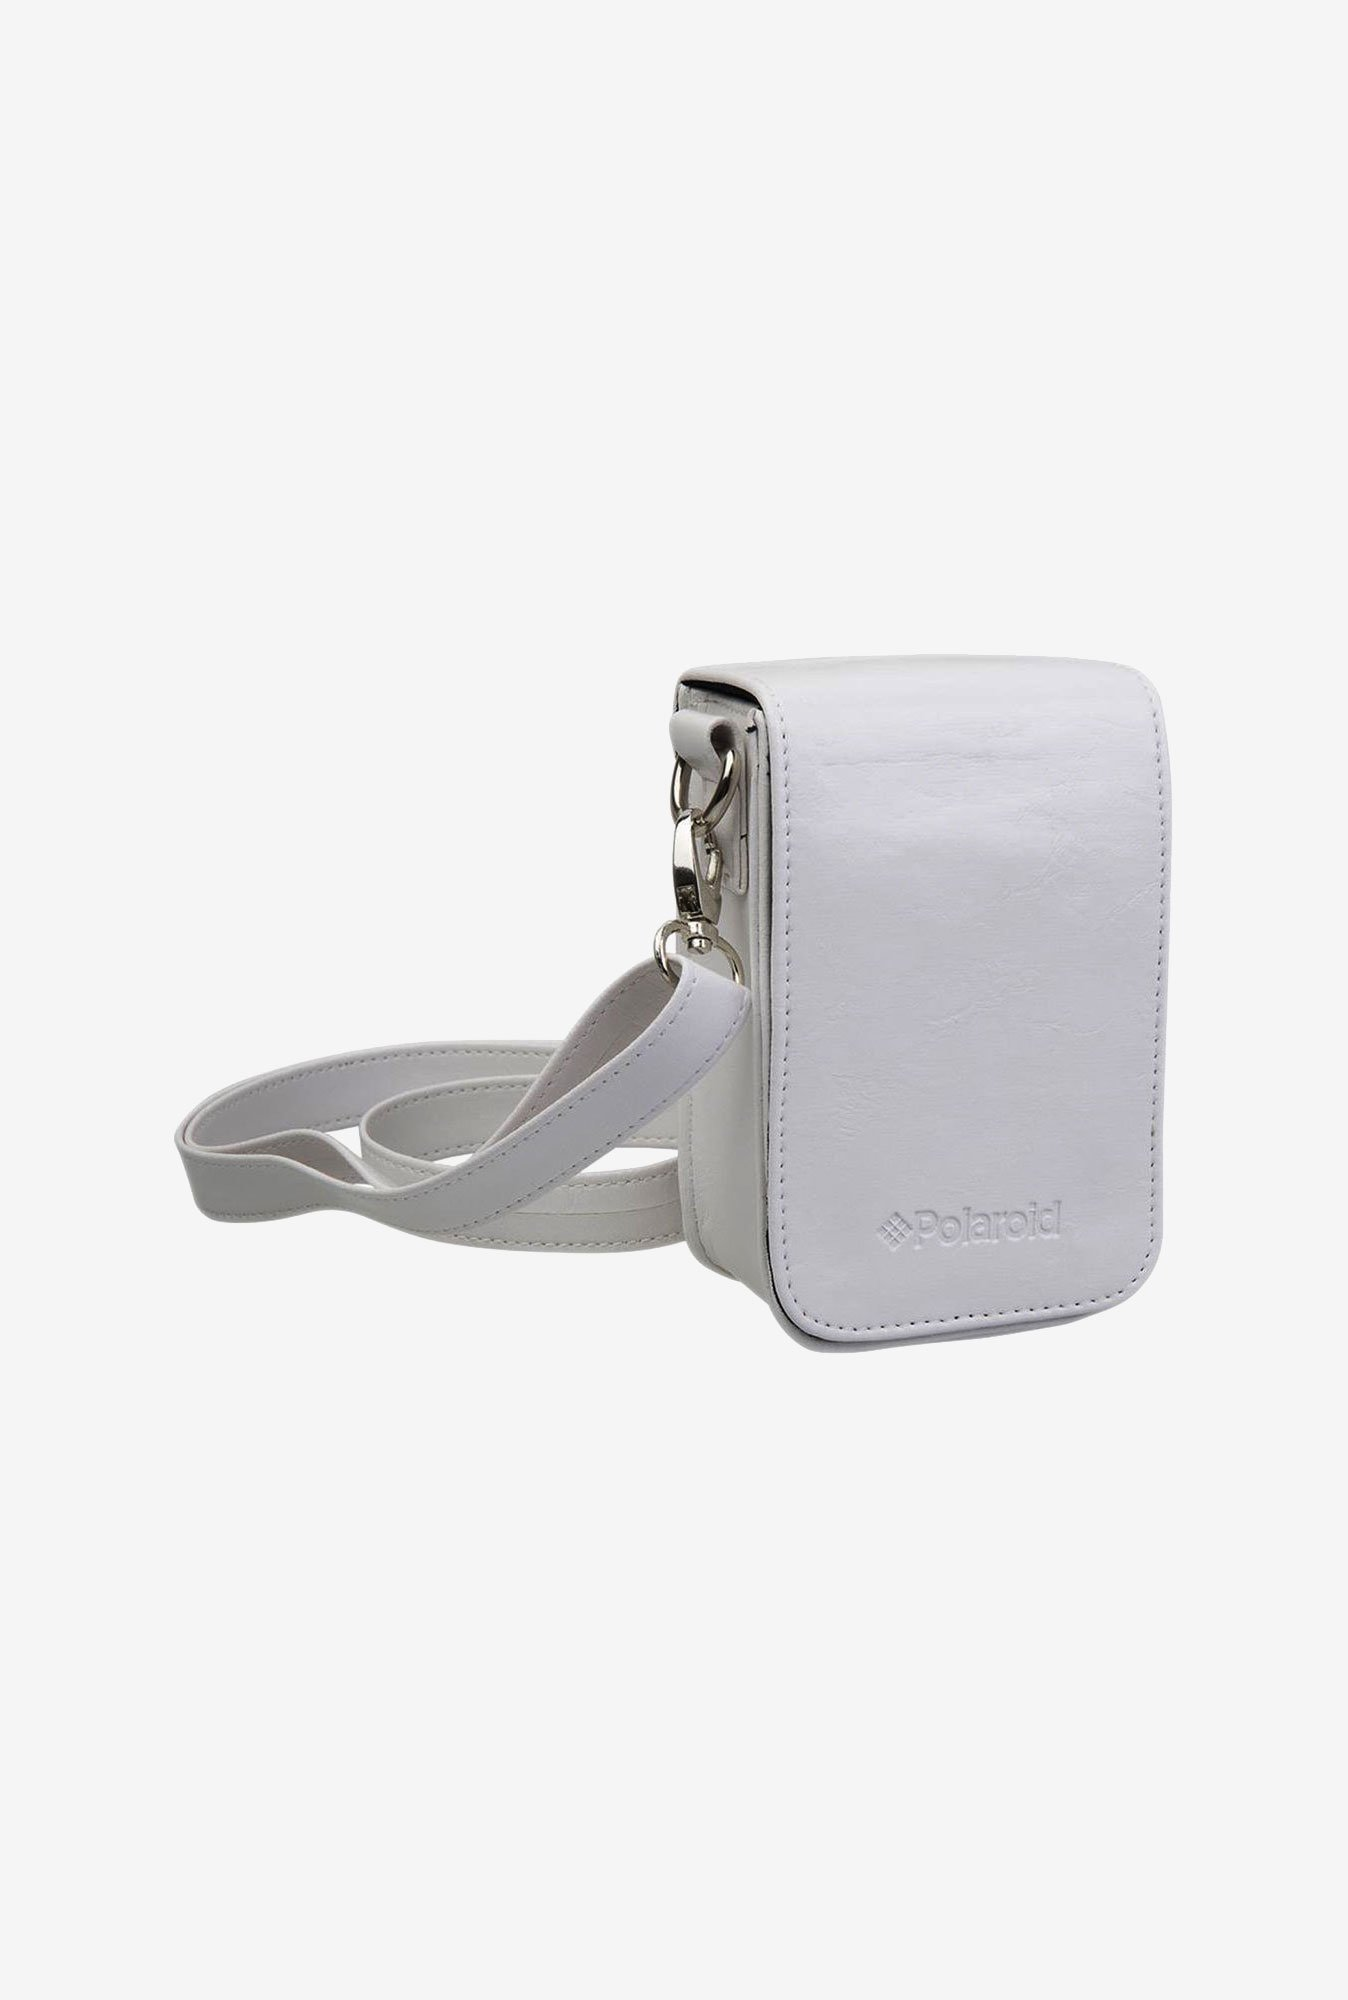 Polaroid Snap & Clip Camera Case for Polaroid Z2300 (White)